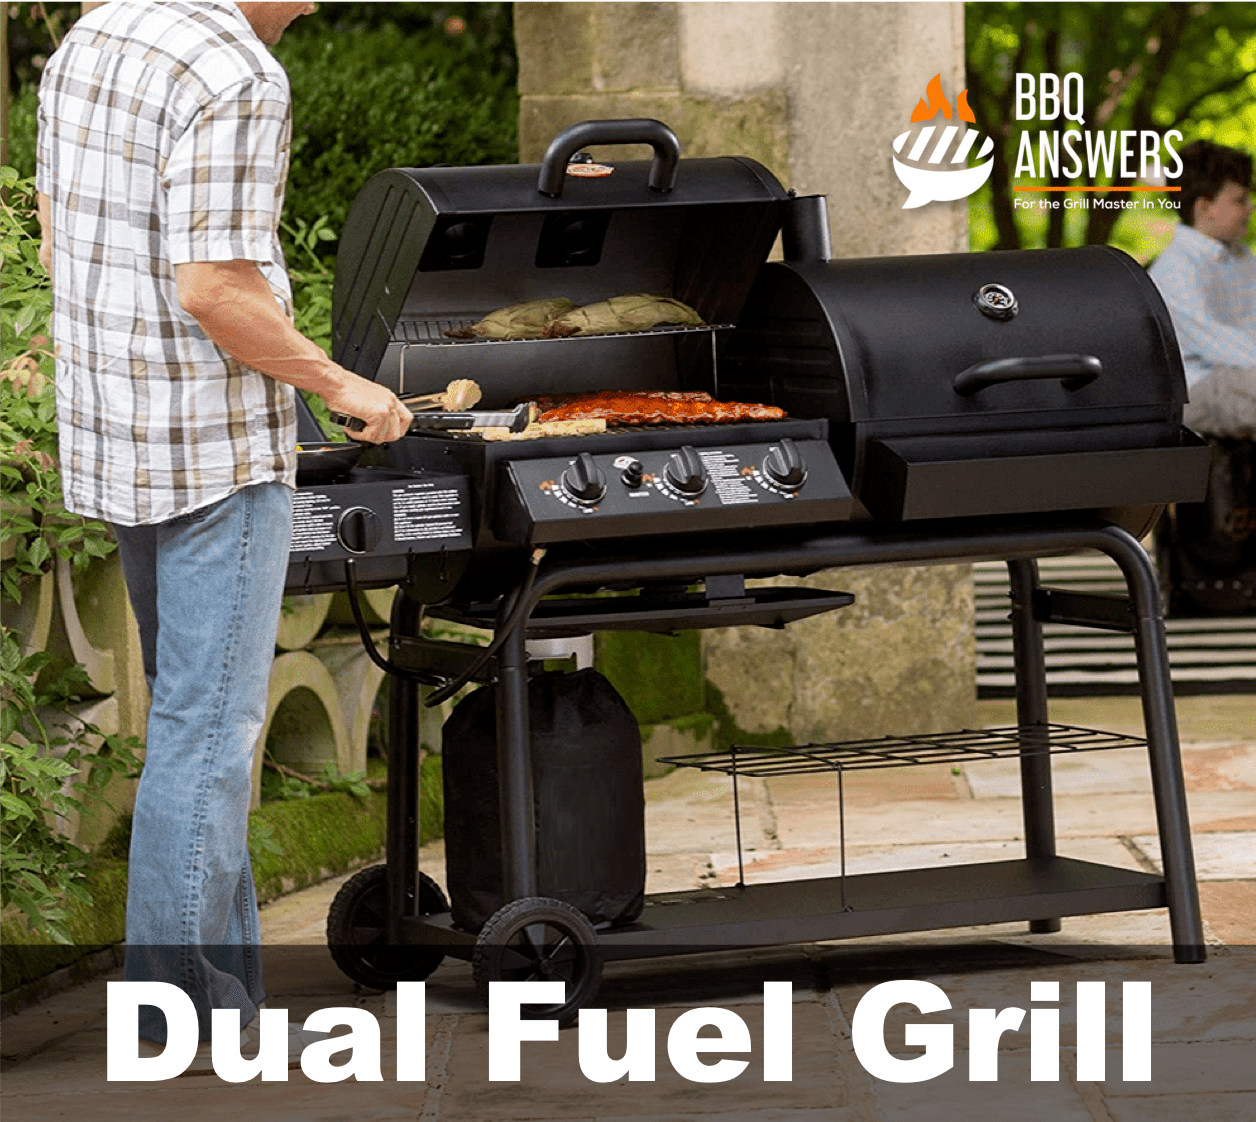 Dual Fuel Grills | Guide to Grill Types | BBQanswers